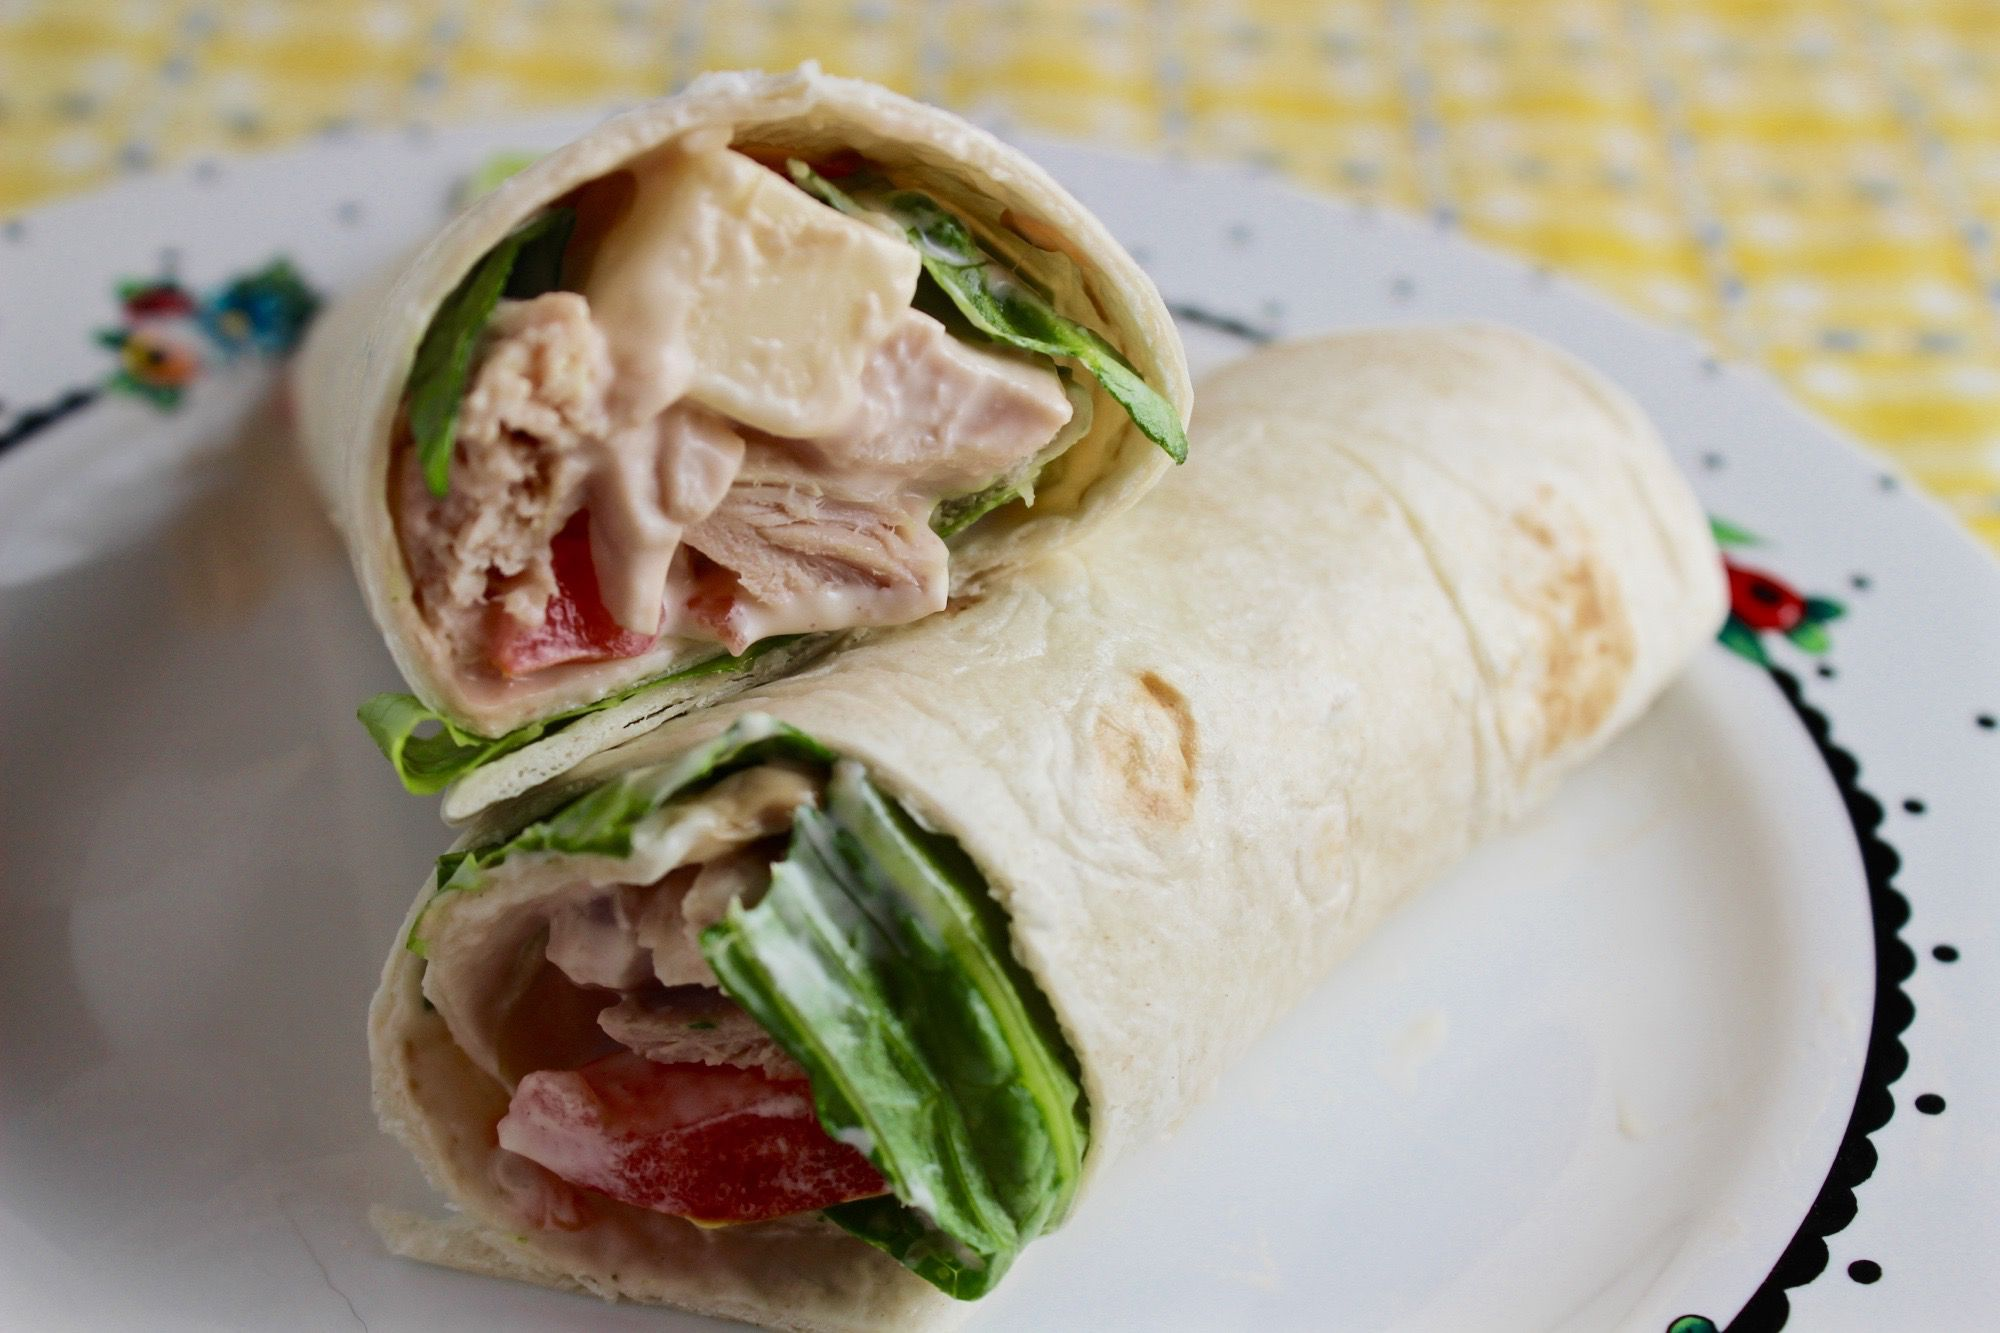 Delicious Low Cholesterol Lunch Ideas For Busy Lives